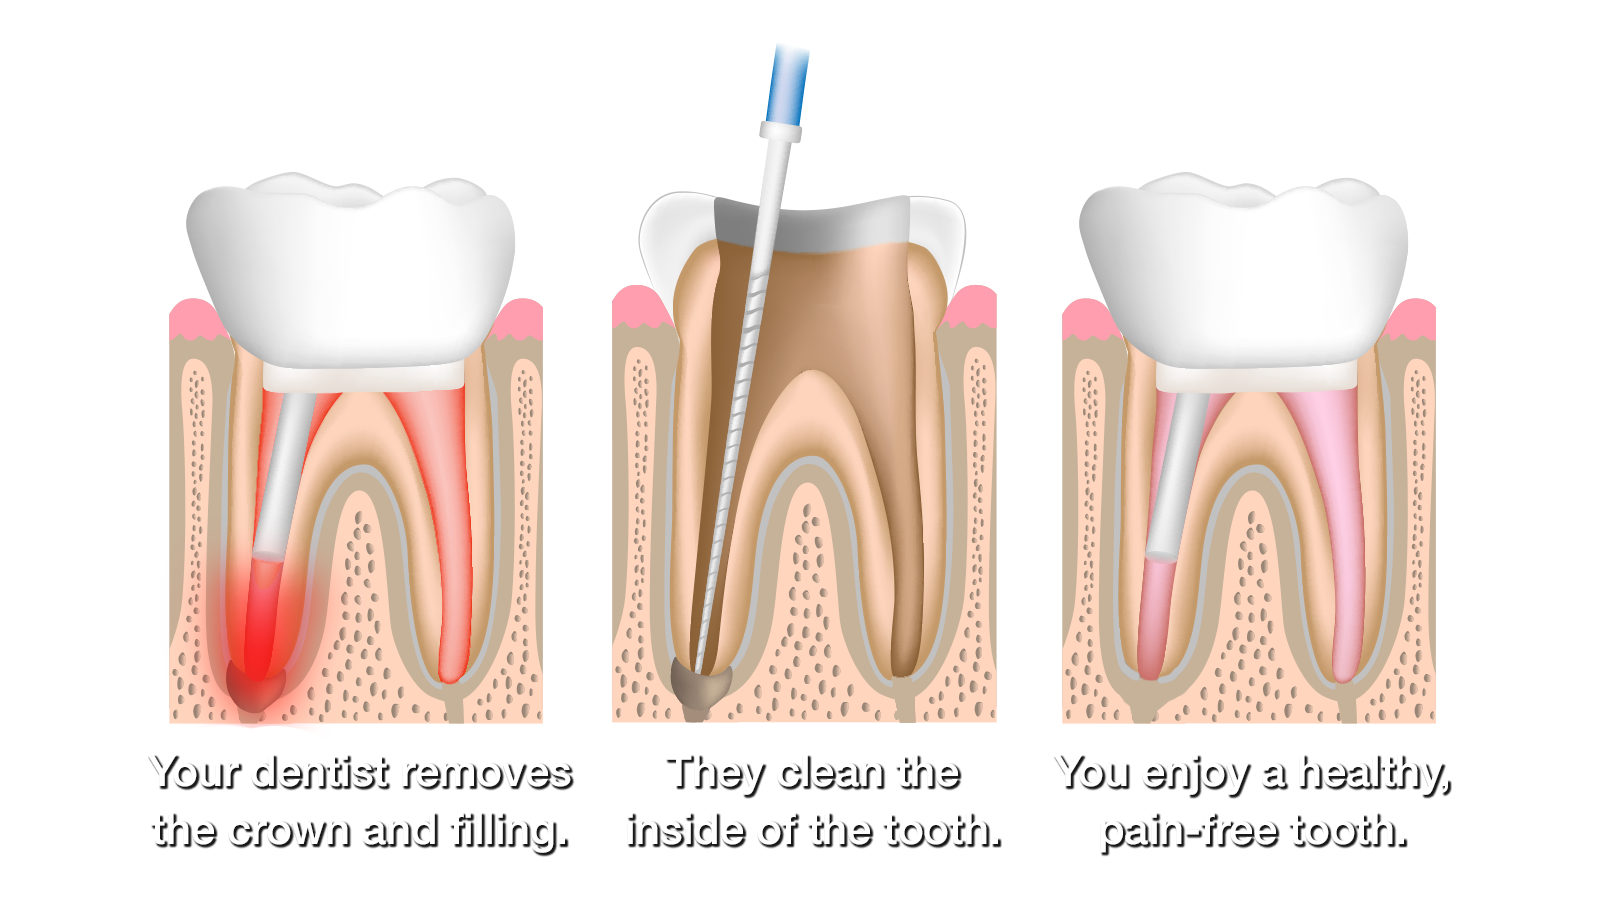 Illustration of root canal retreatment